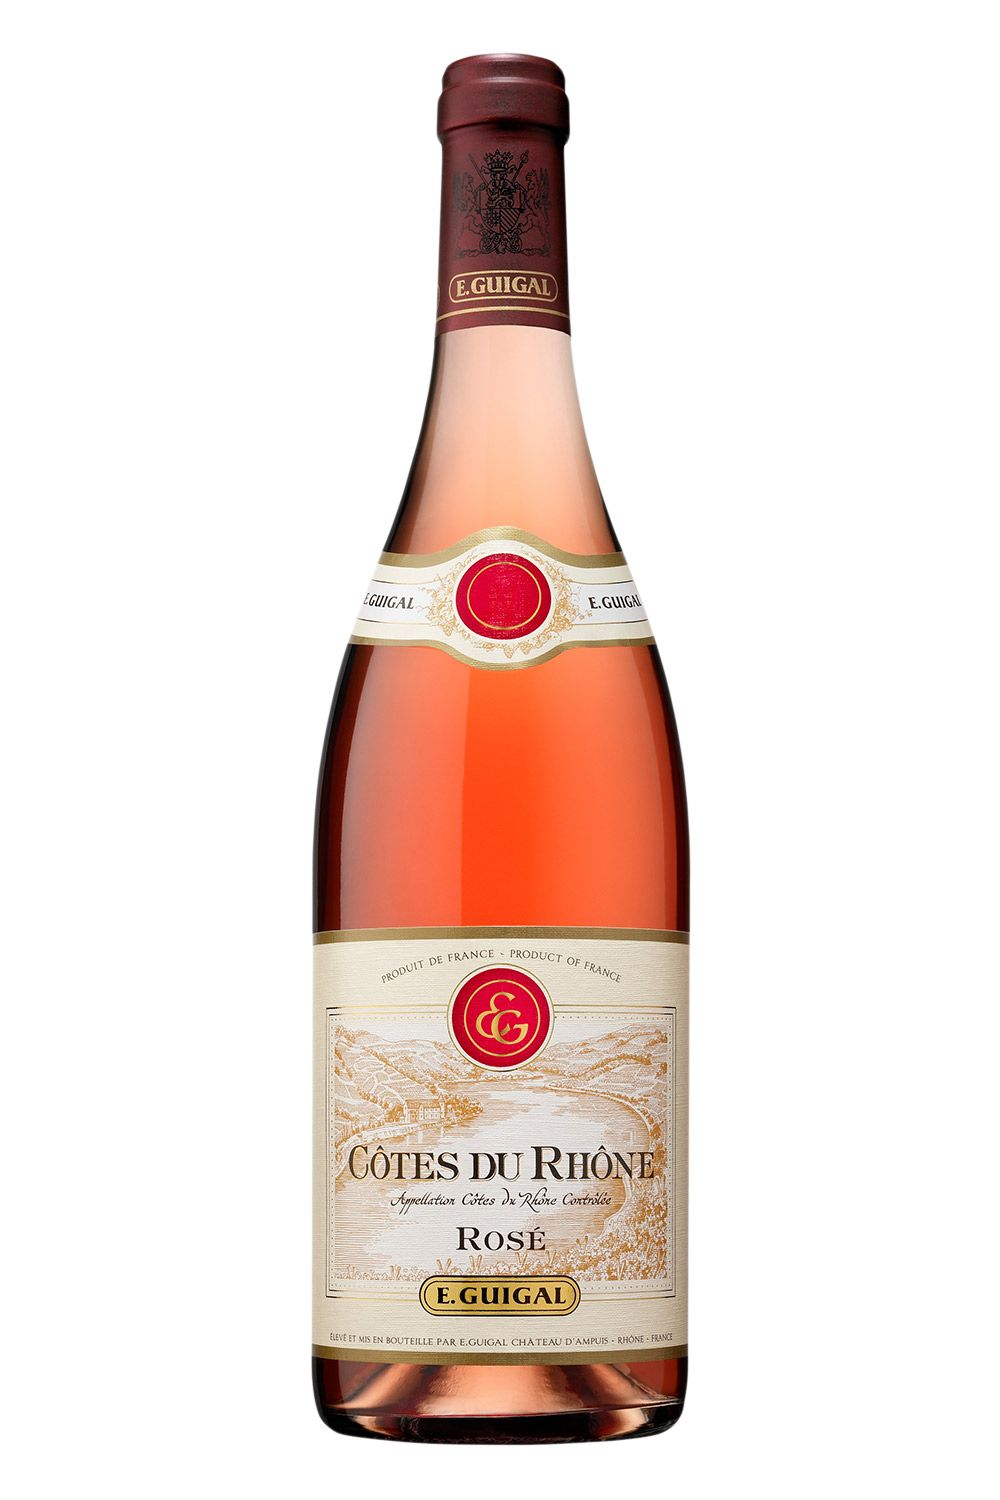 "<p>The Guigal family has been making rosé since the 1940s, so it's safe to say they know what they're doing. The grapes are specifically grown to make superior rosé wines—but the price is really the kicker. </p><p>$15, <a href=""http://www.totalwine.com/wine/rose-blush-wine/rhone-blend/guigal-cotes-du-rhone-rose/p/96670750"" target=""_blank"">totalwine.com</a></p>"